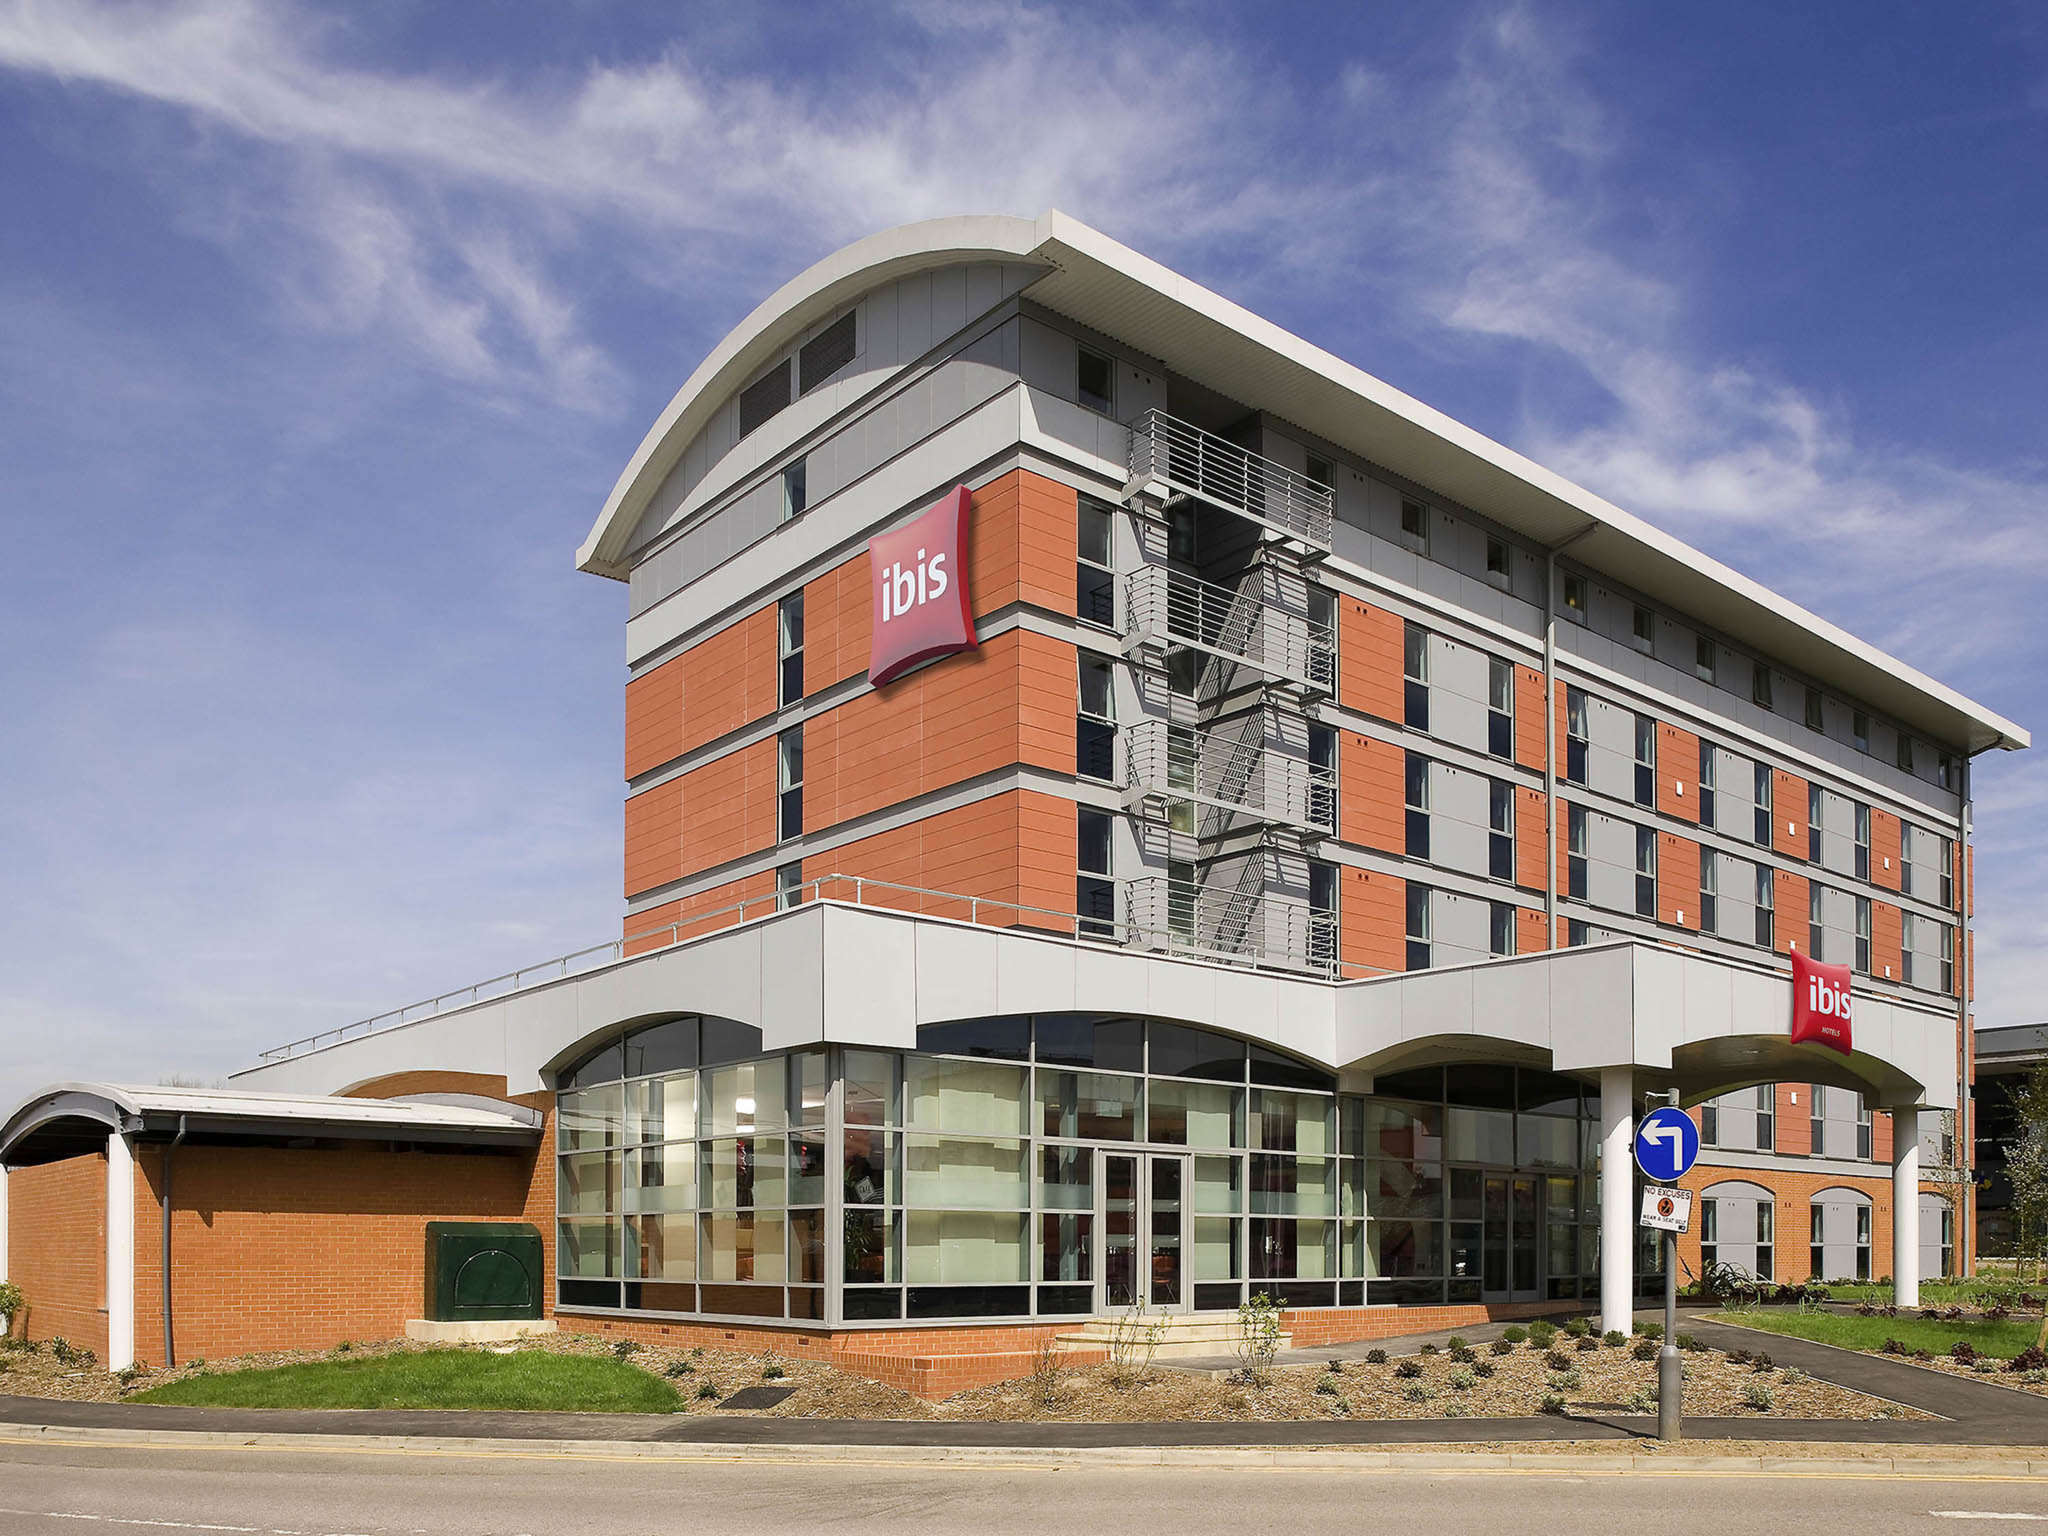 Hotell – ibis London Elstree Borehamwood